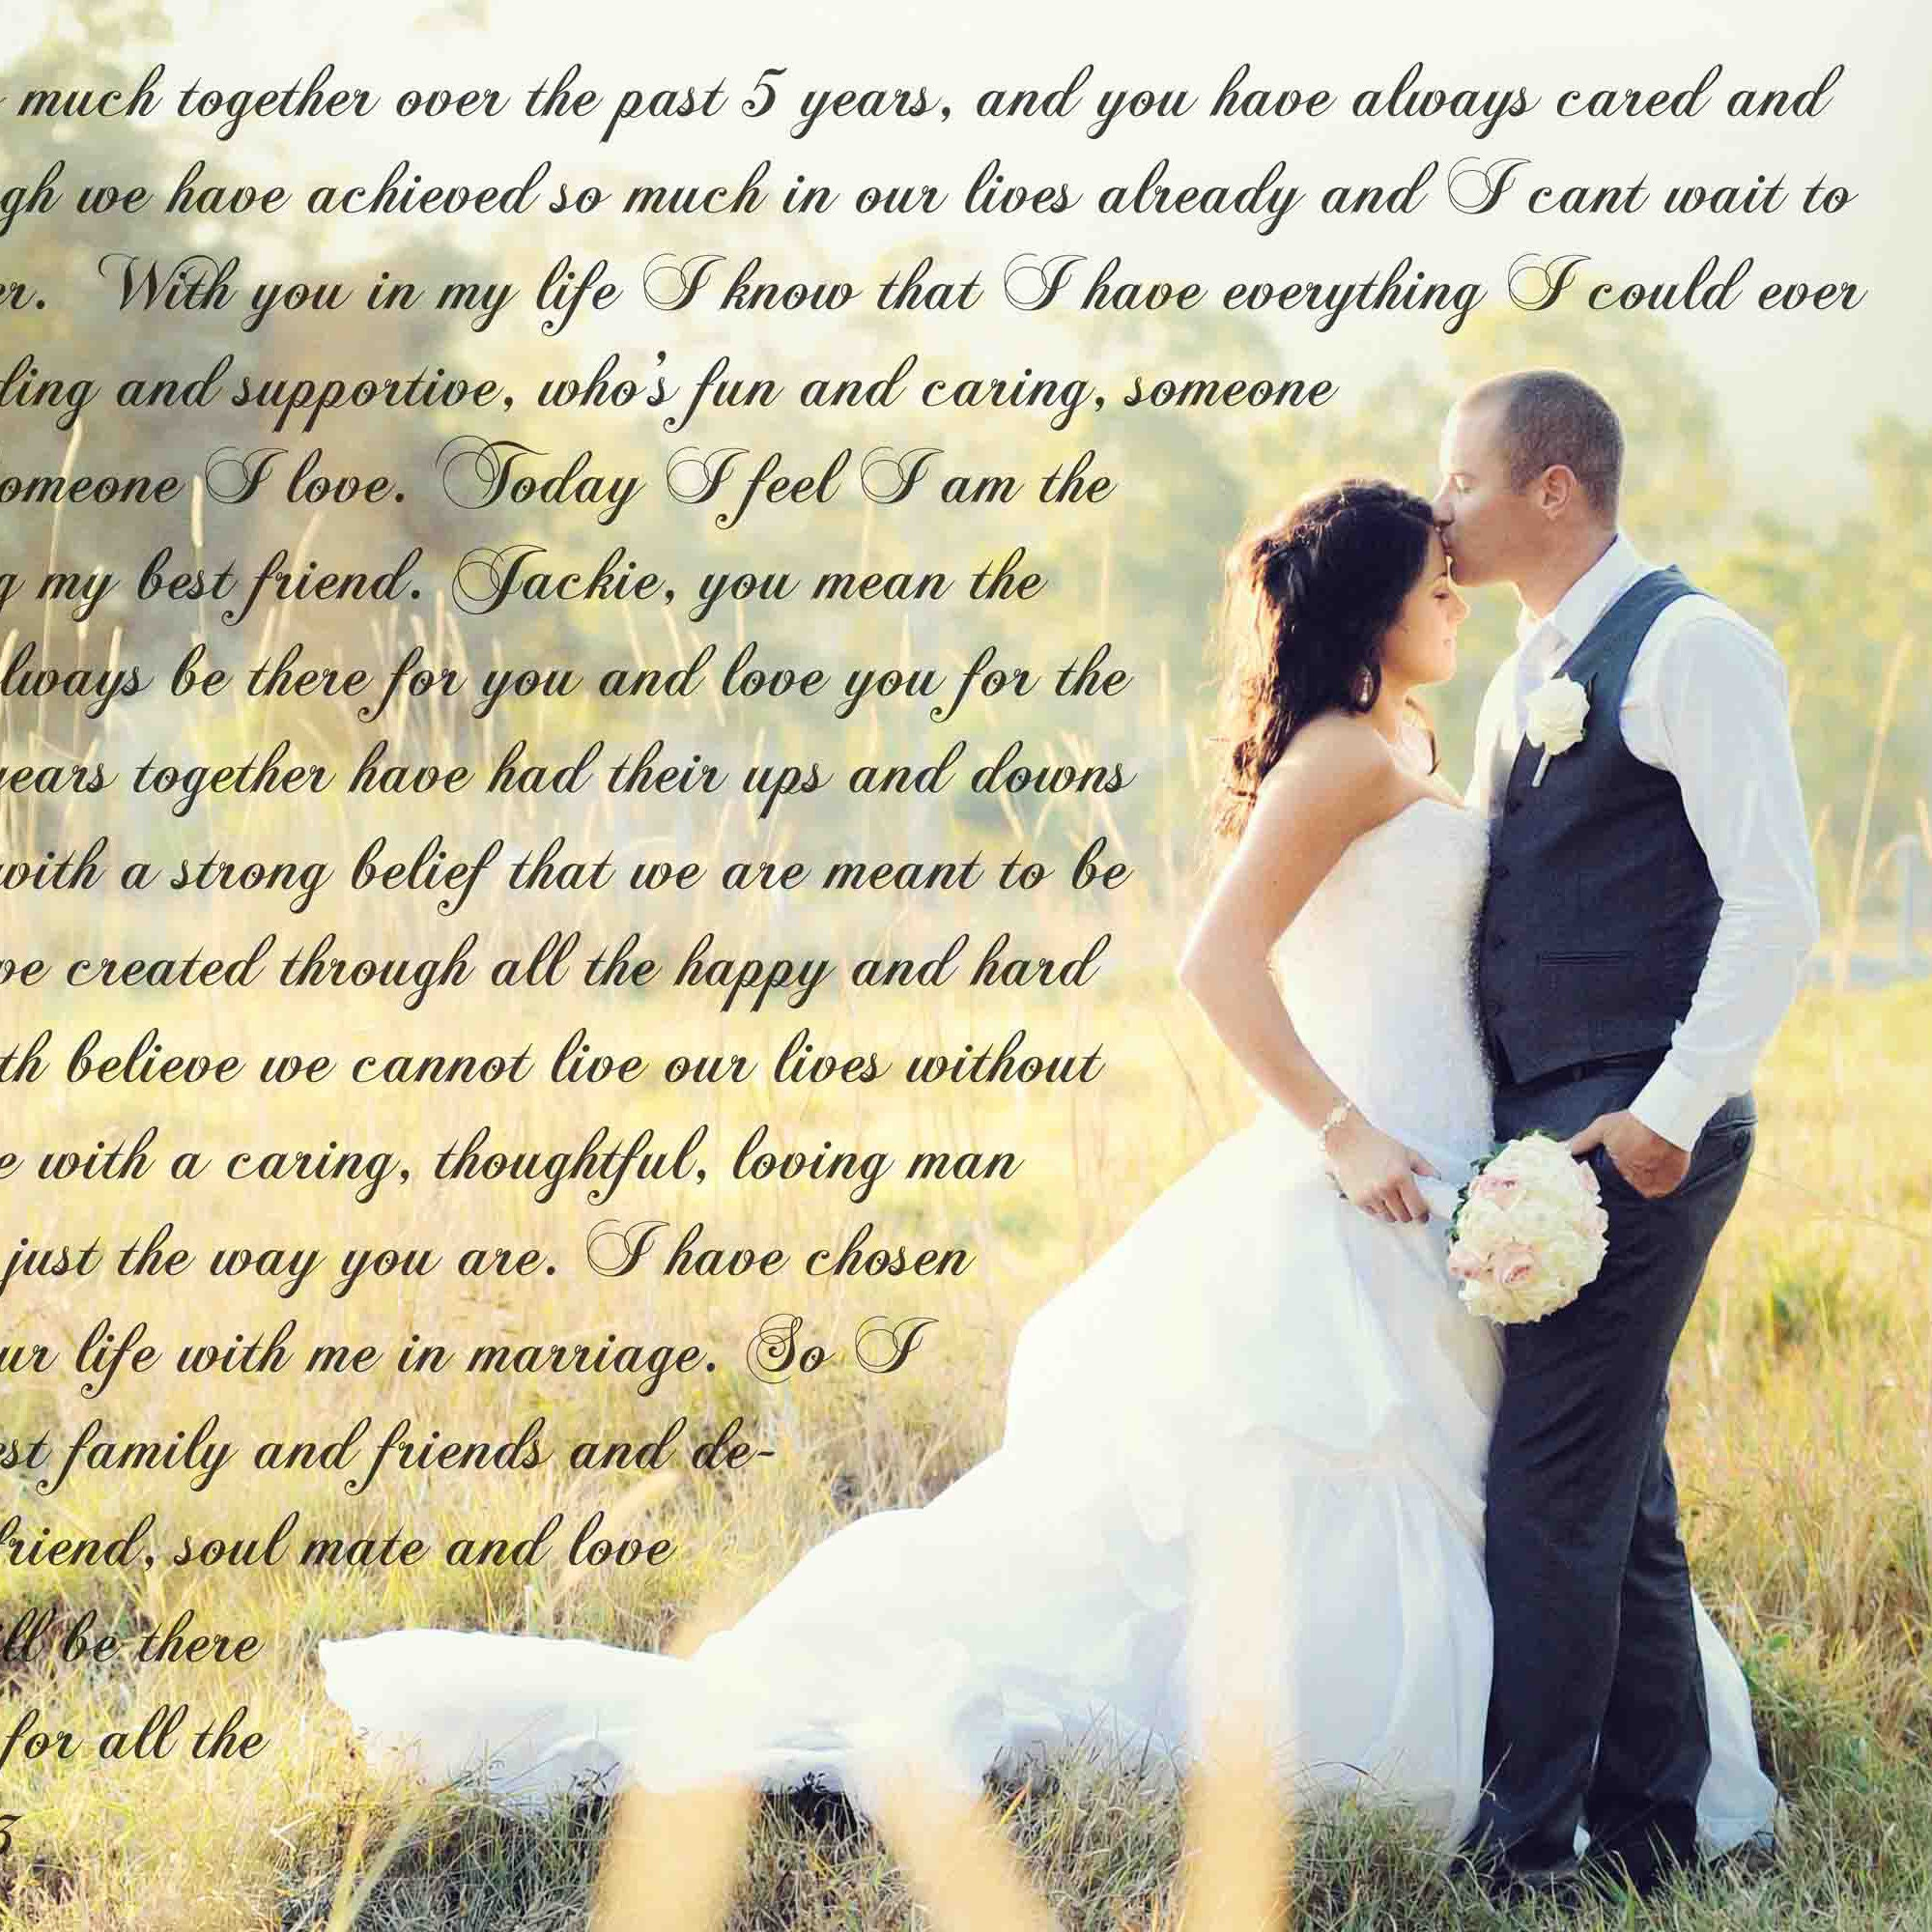 Custom Word Art Vows on Canvas Anniversary Gift by CanvasVows